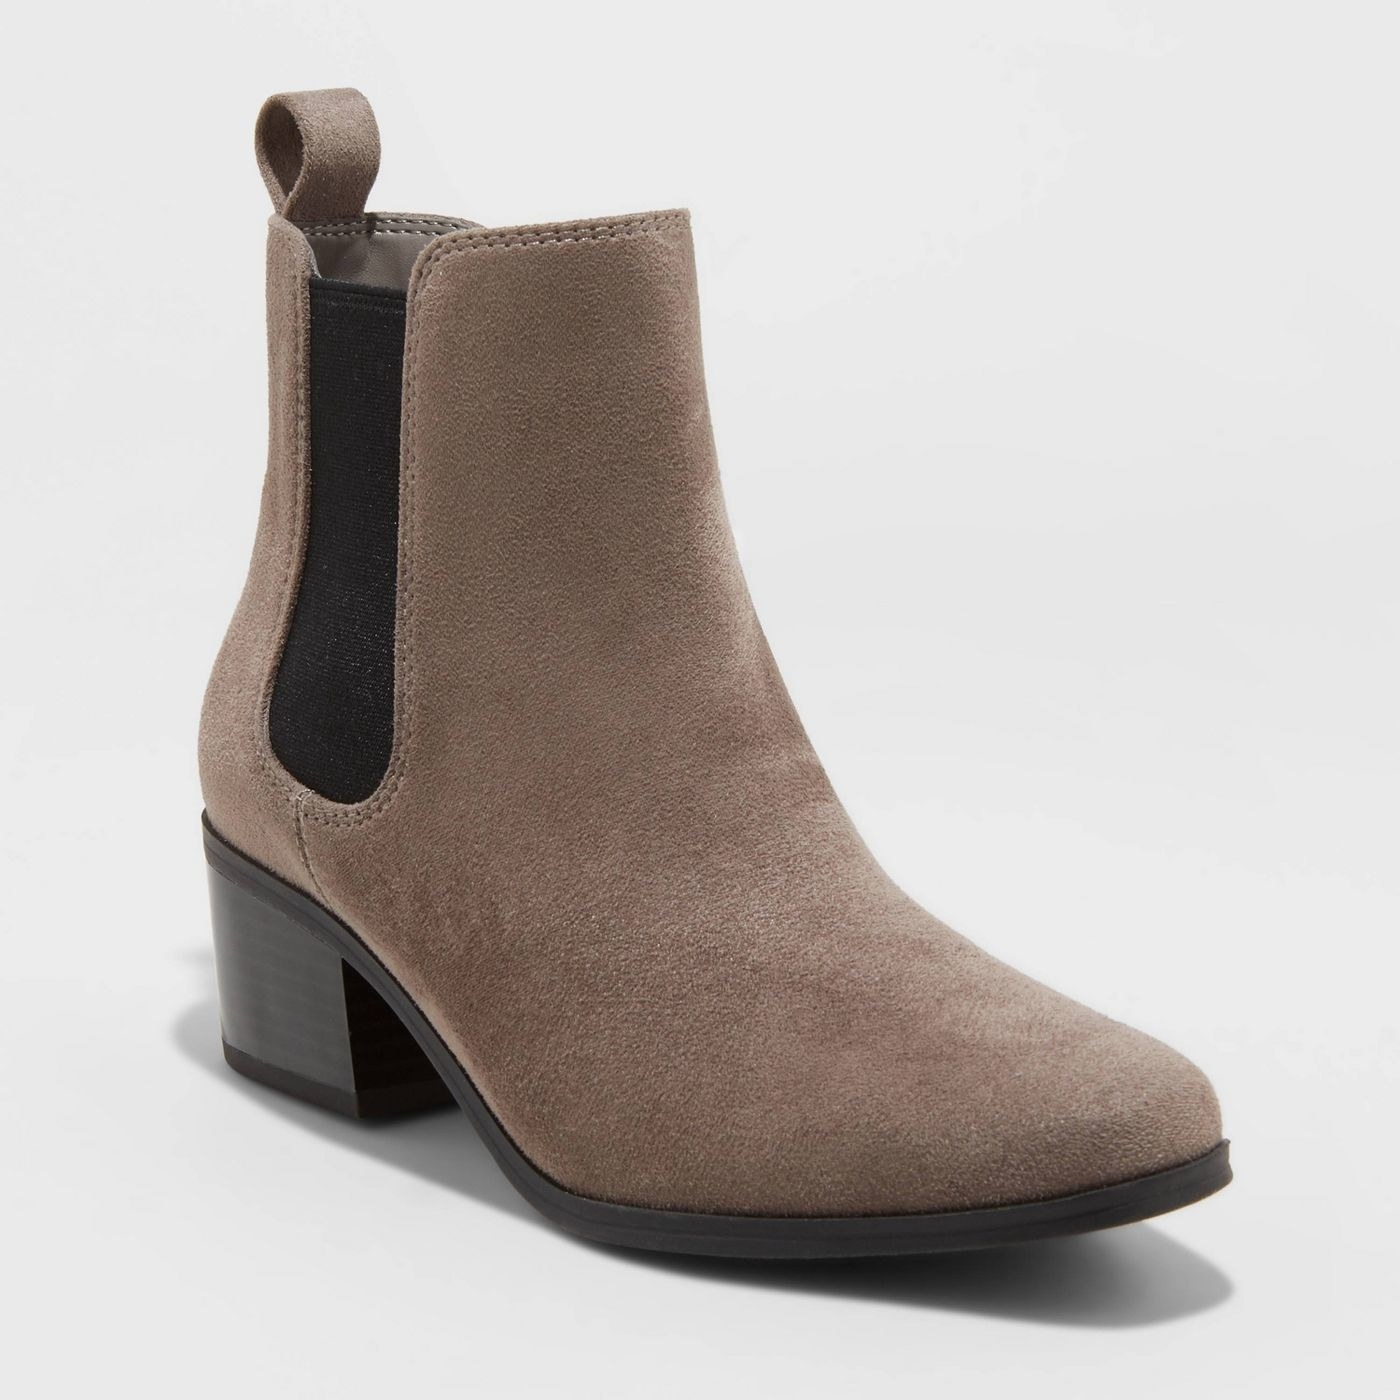 gray chelsea boots with black stretch on the side